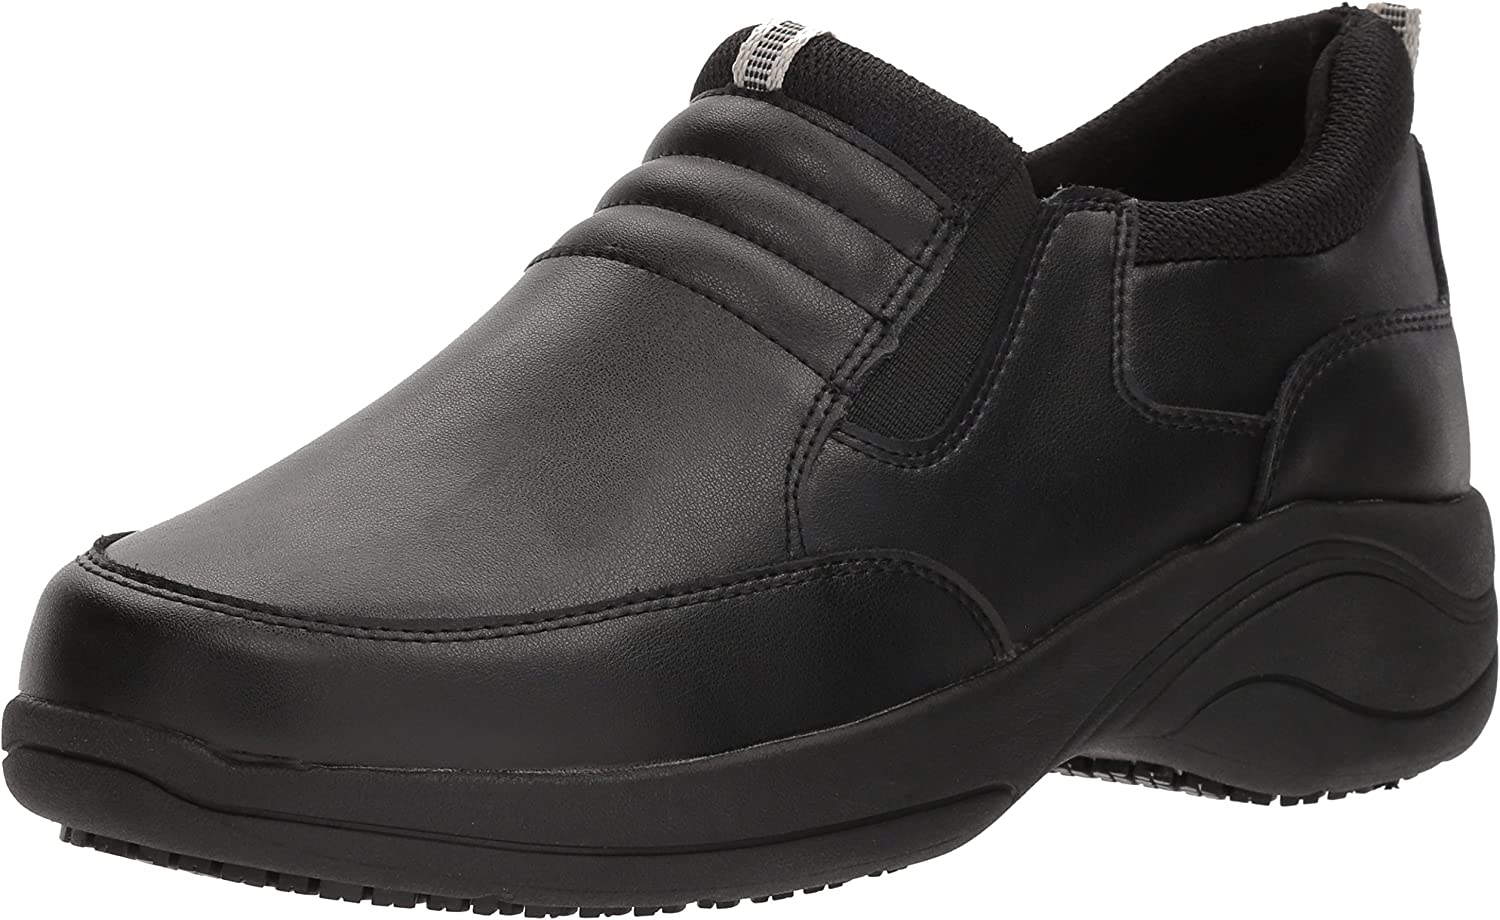 Easy Works Women's Magna Health Care Free shipping on posting reviews Shoe 9 Branded goods Professional Black